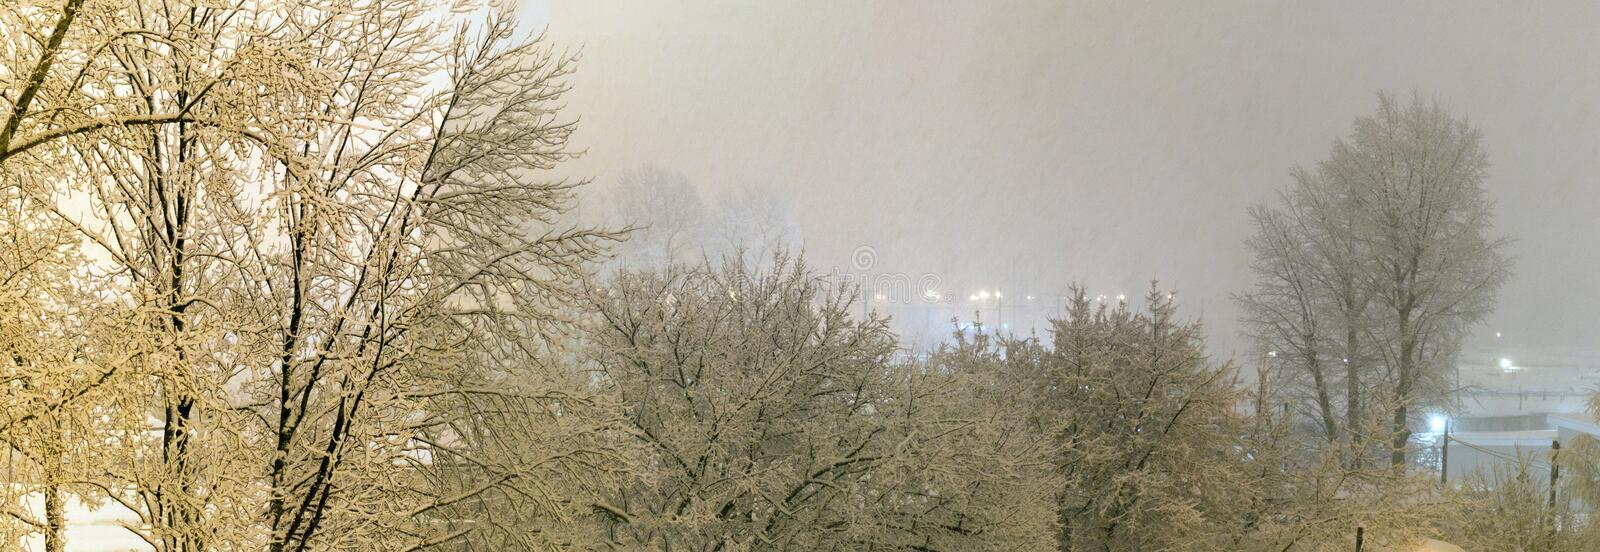 Night city under heavy snowfall. Trees and streets under flakes of snow. royalty free stock photography